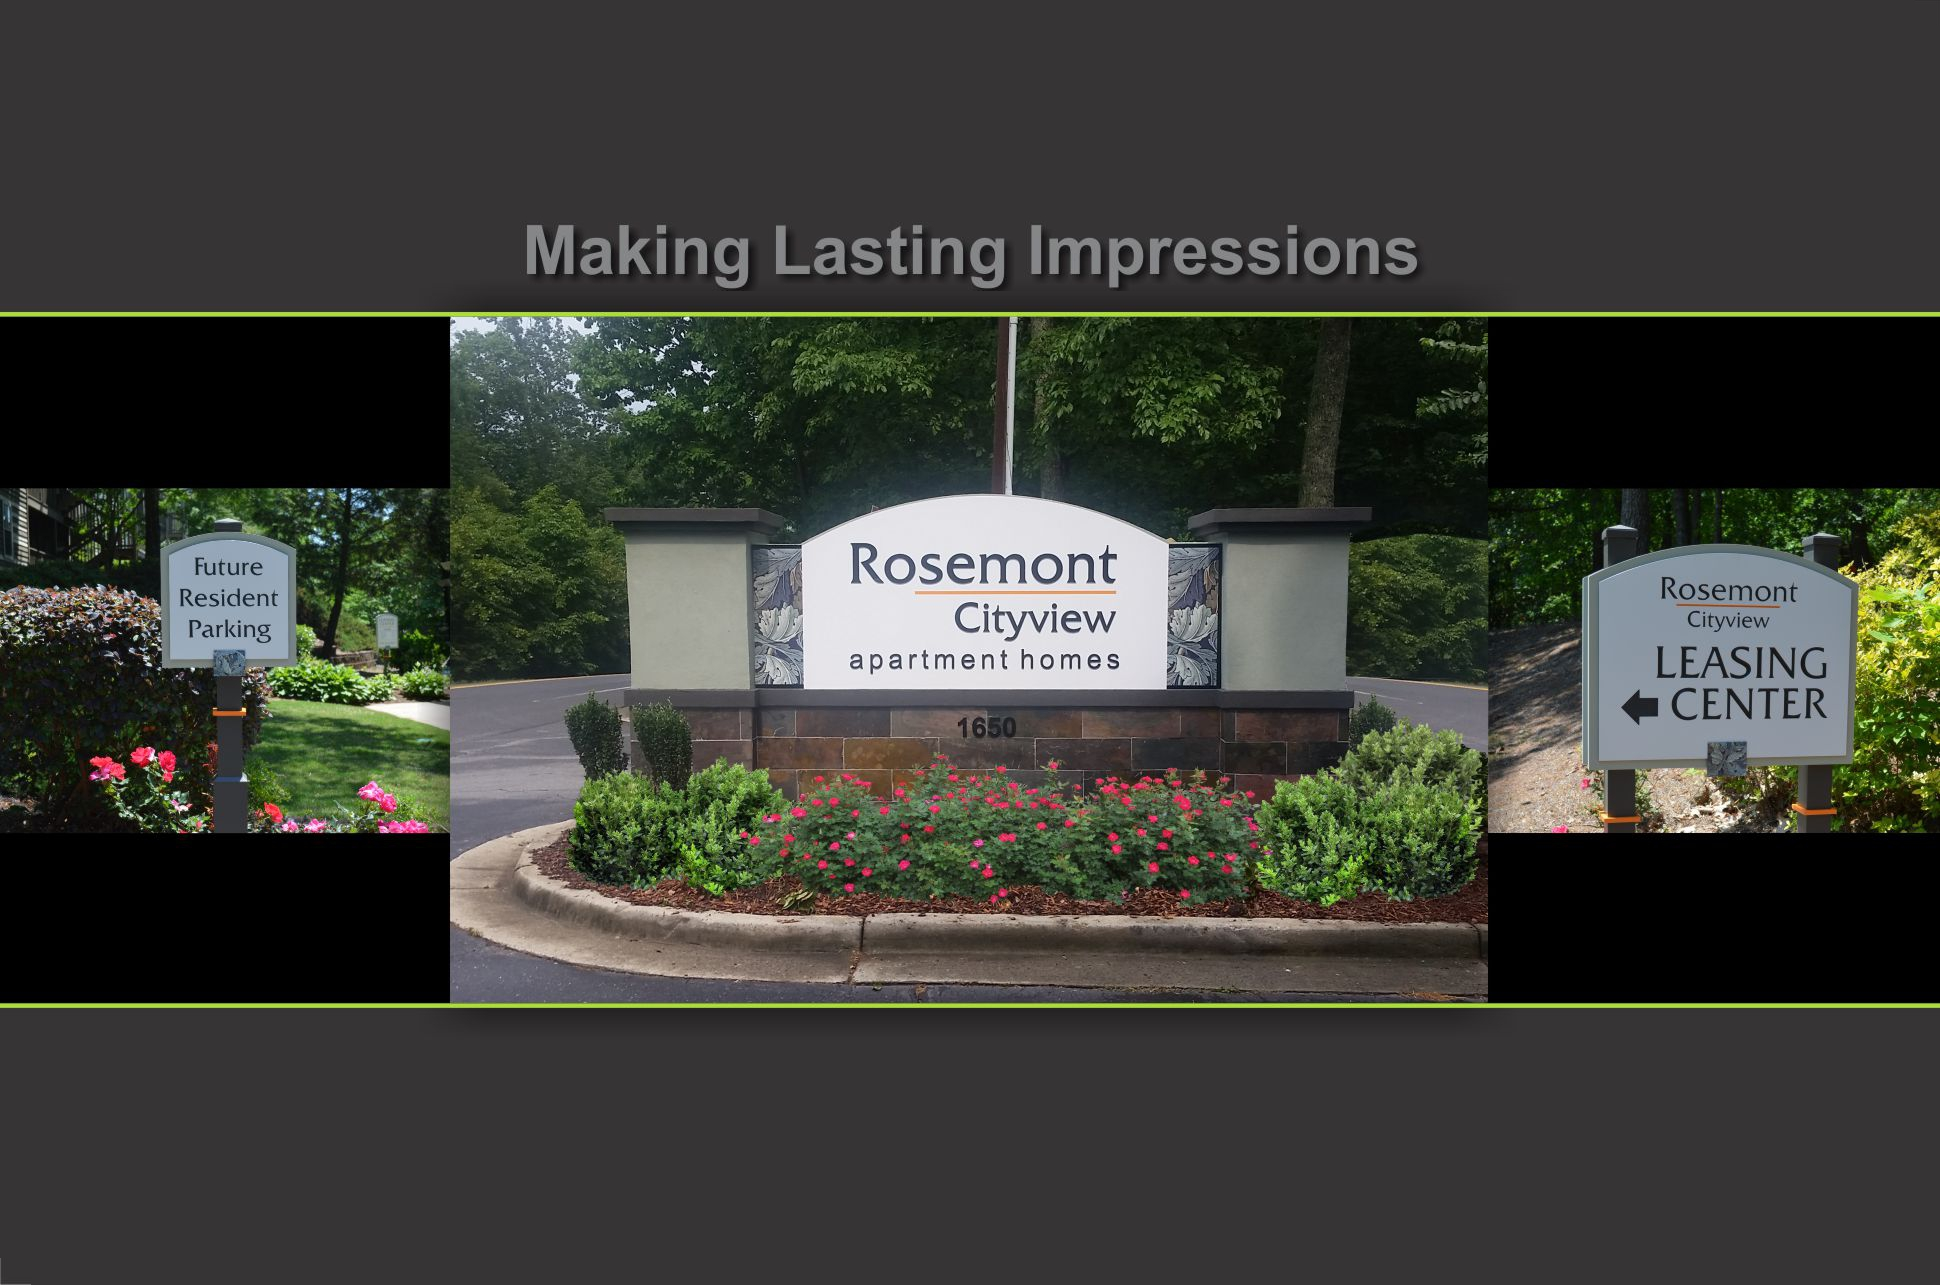 Rosemont cityview apartments ID sign